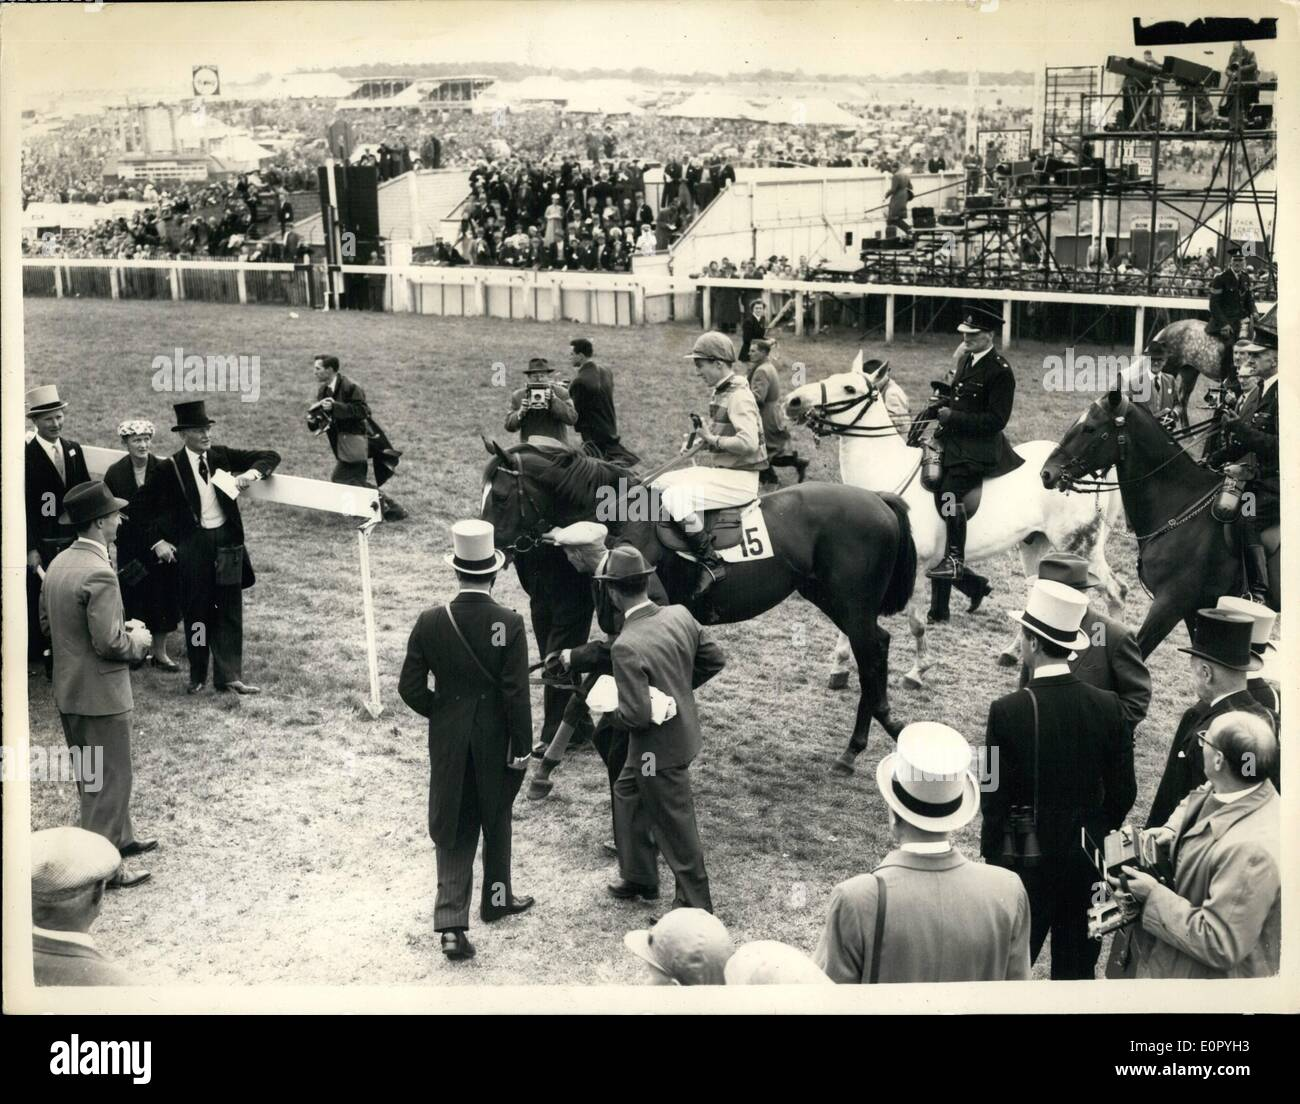 May 05, 1957 - ''Crepello'' wins the 1957 Derby. The Lead-In.: Photo shows General view of the soons at Epsom this afternoon as - Stock Image